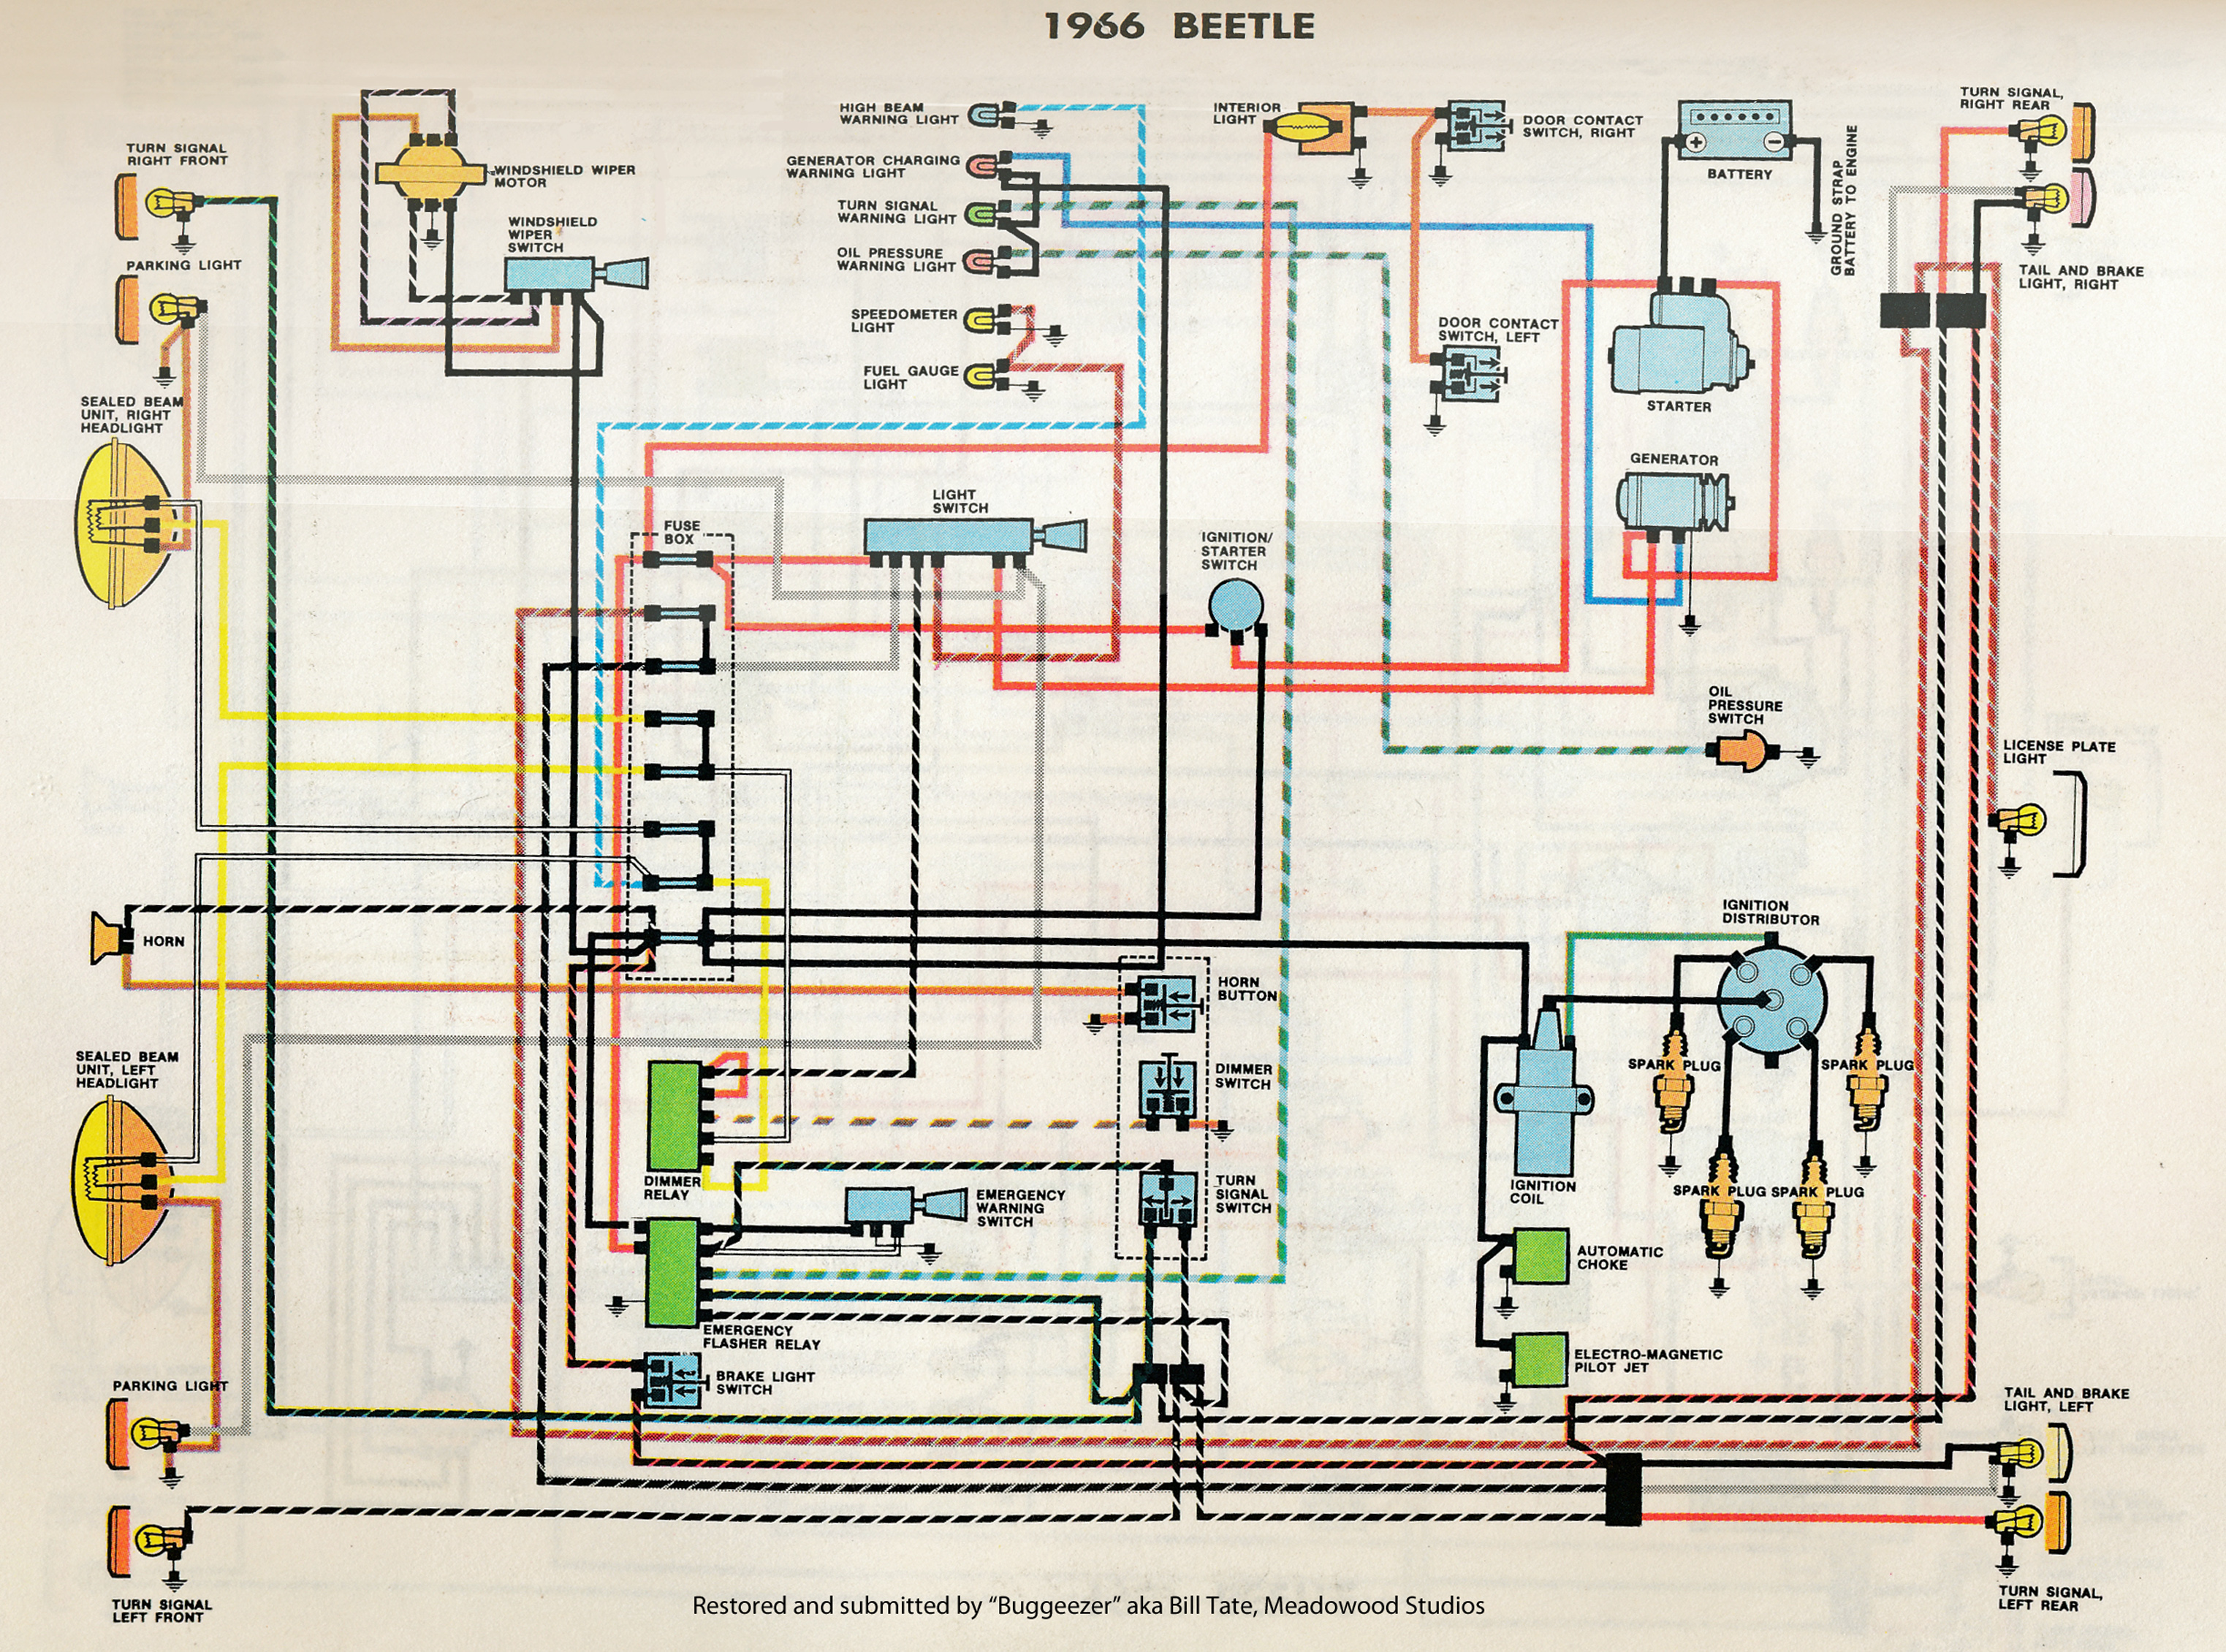 Type 1 Wiring Diagrams Automotive Hazard Switch Diagram Free Download